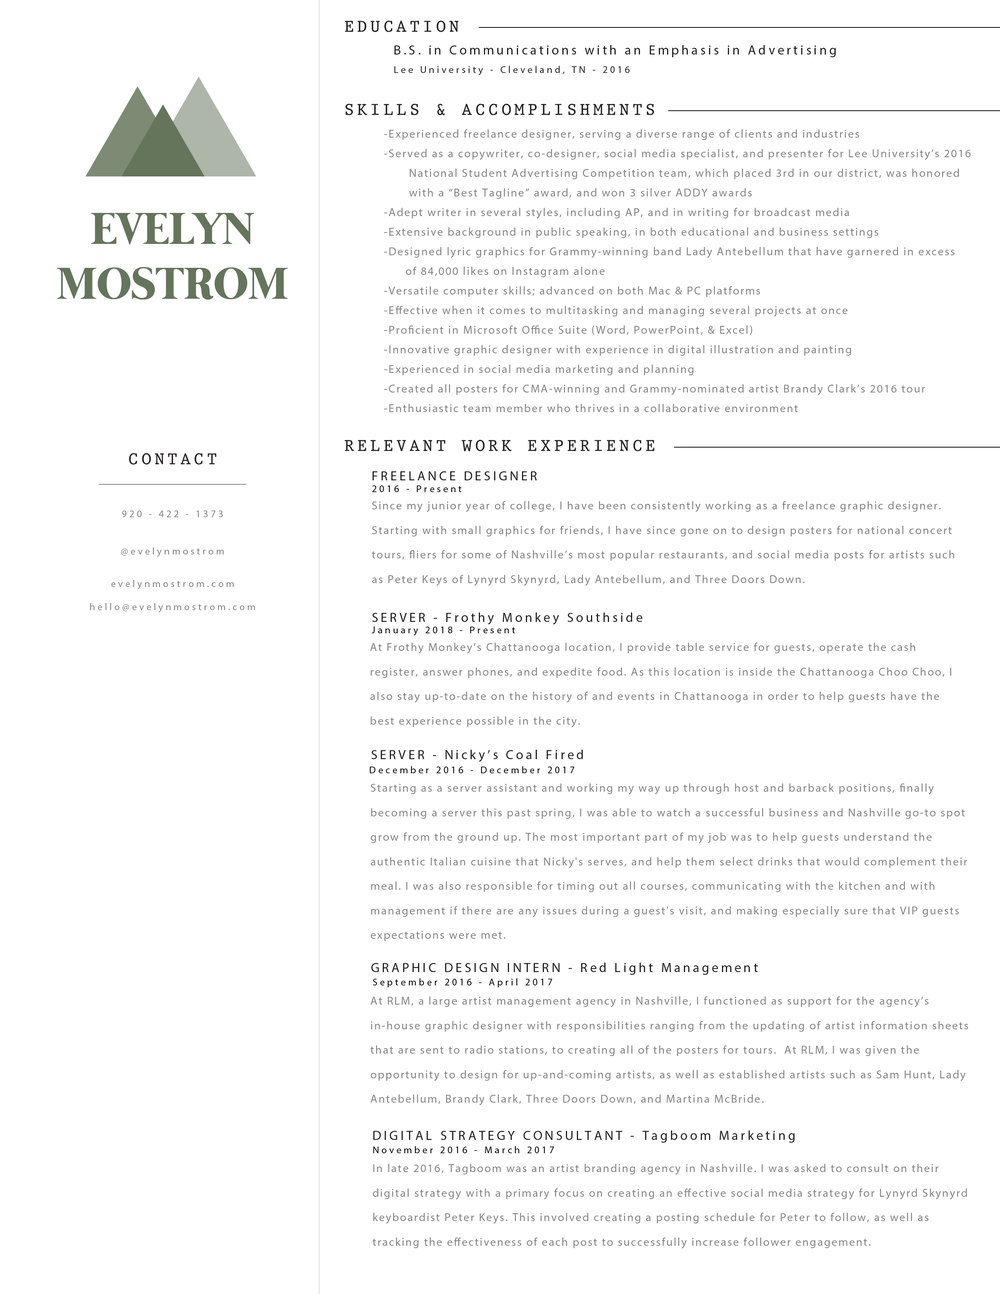 EvelynMostrom_Resume5302018-01.png